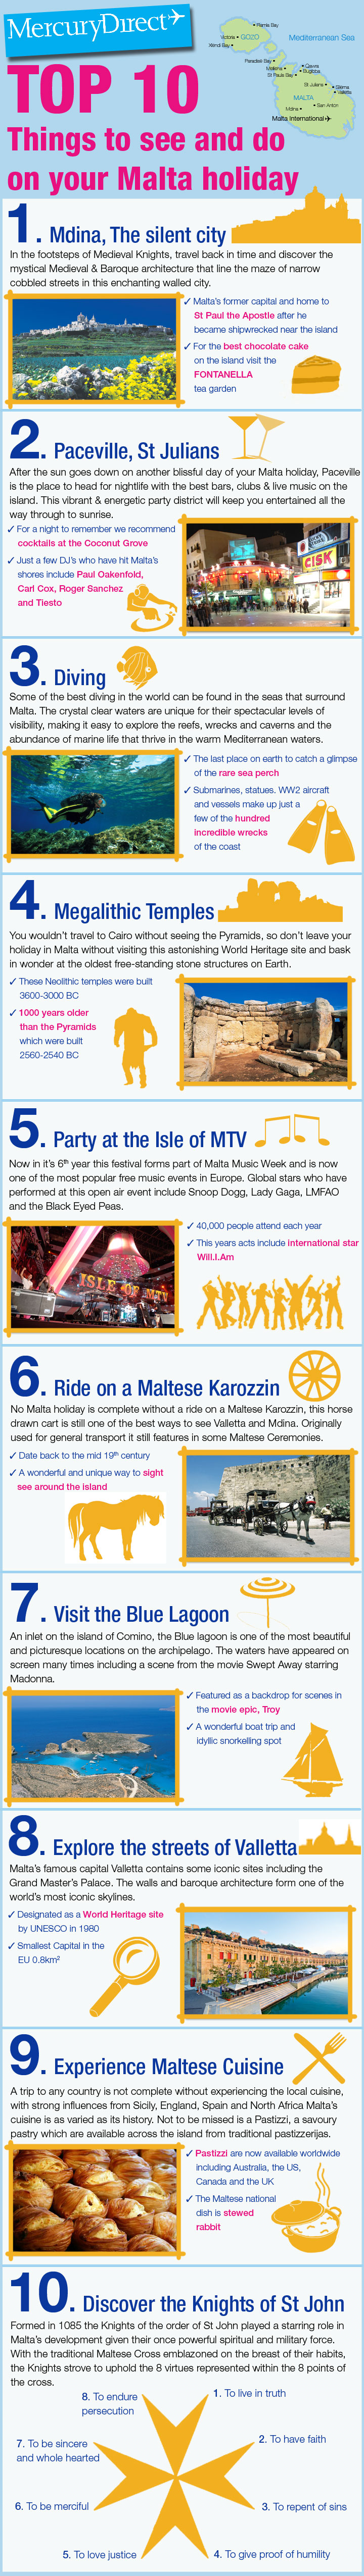 Top 10 things to see and do on your Malta holiday